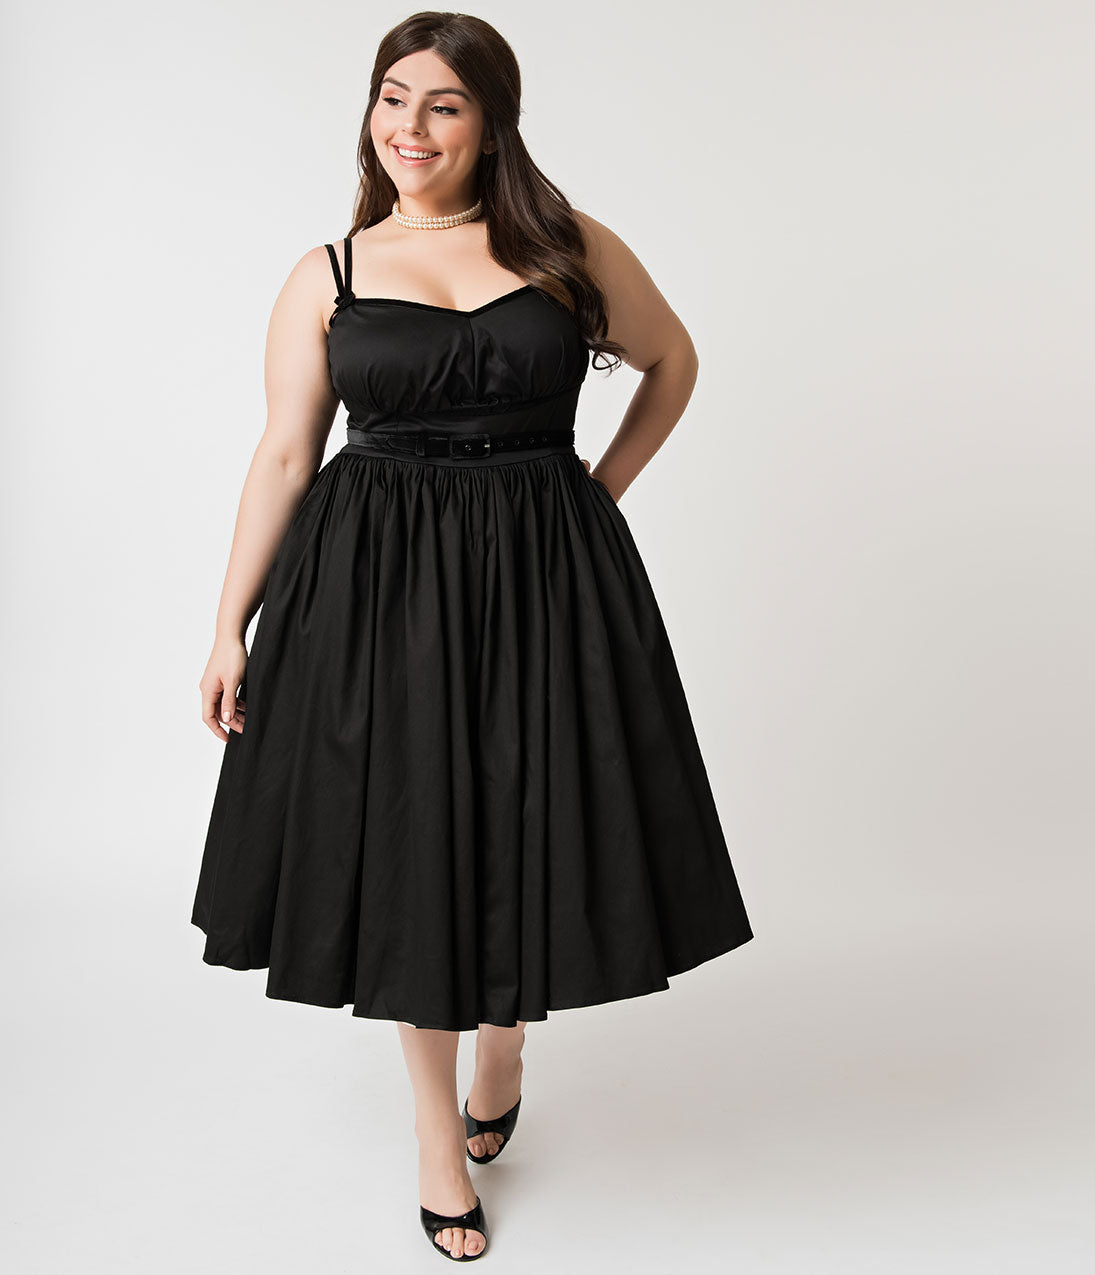 Plus Size Pin Up Dresses Rockabilly Micheline Pitt For Unique Vintage: Plus Size Black Rockabilly Wedding Dresses At Reisefeber.org